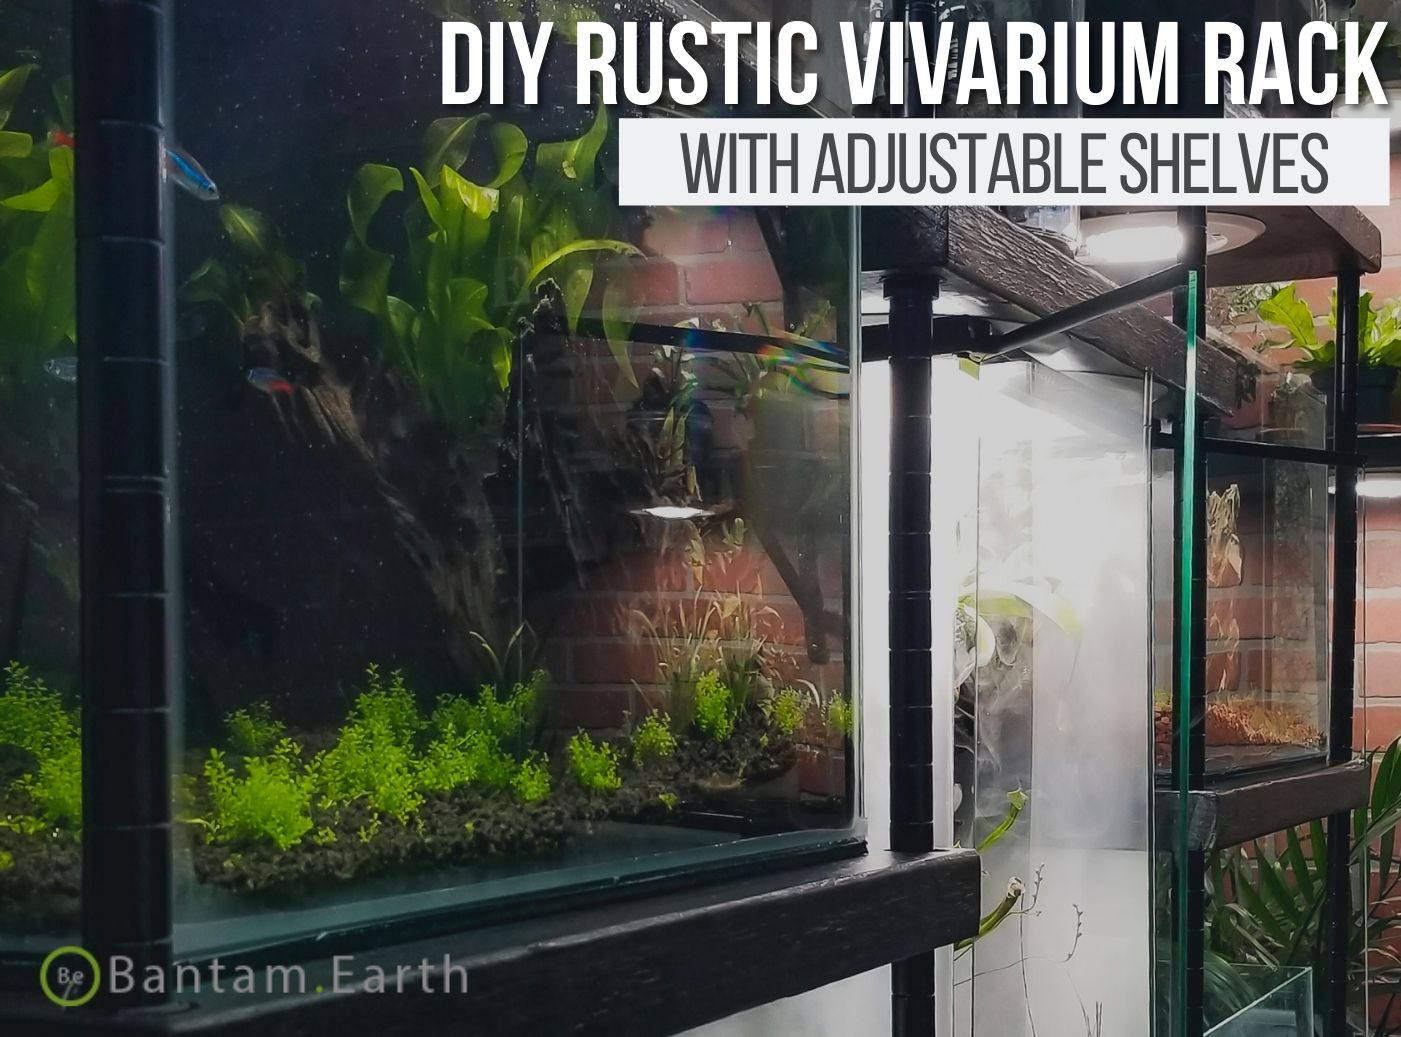 DIY Vivarium Rack For Terrariums and Aquariums